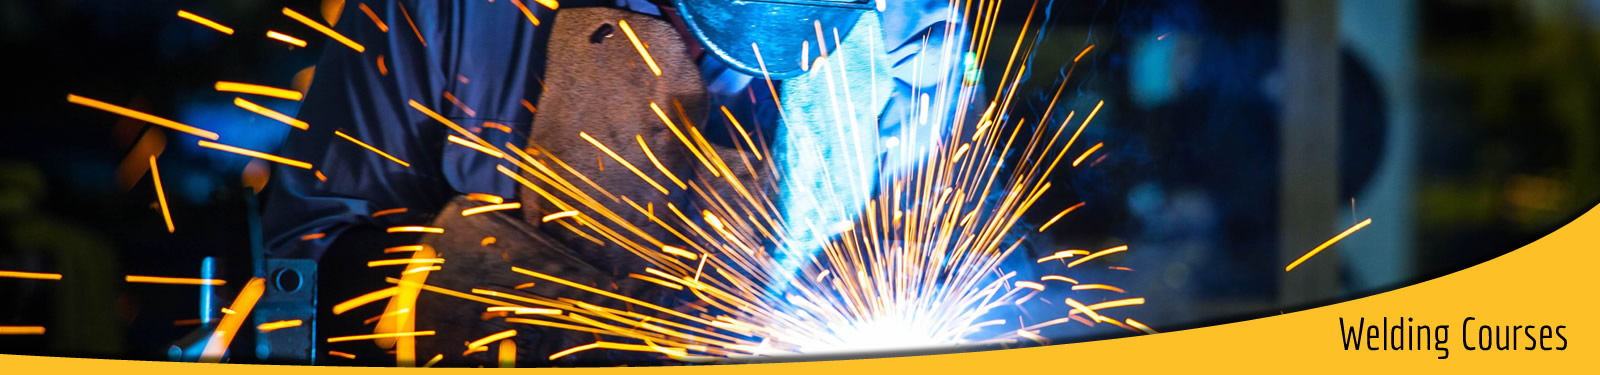 New To Welding, Introductory Courses